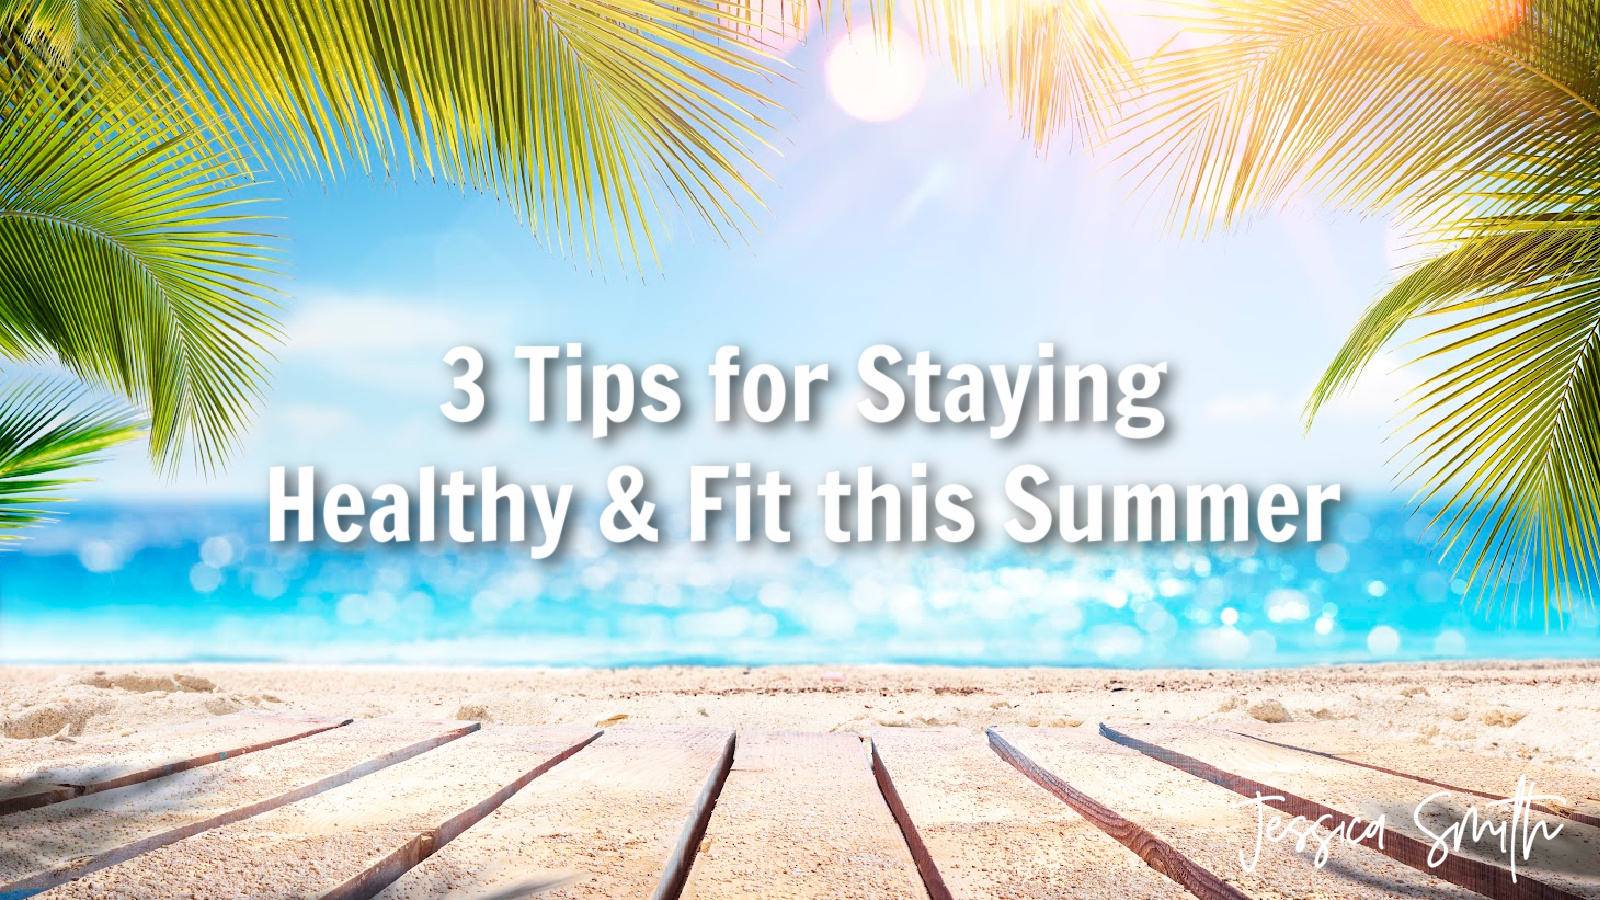 3 Tips for Staying Healthy & Fit this Summer